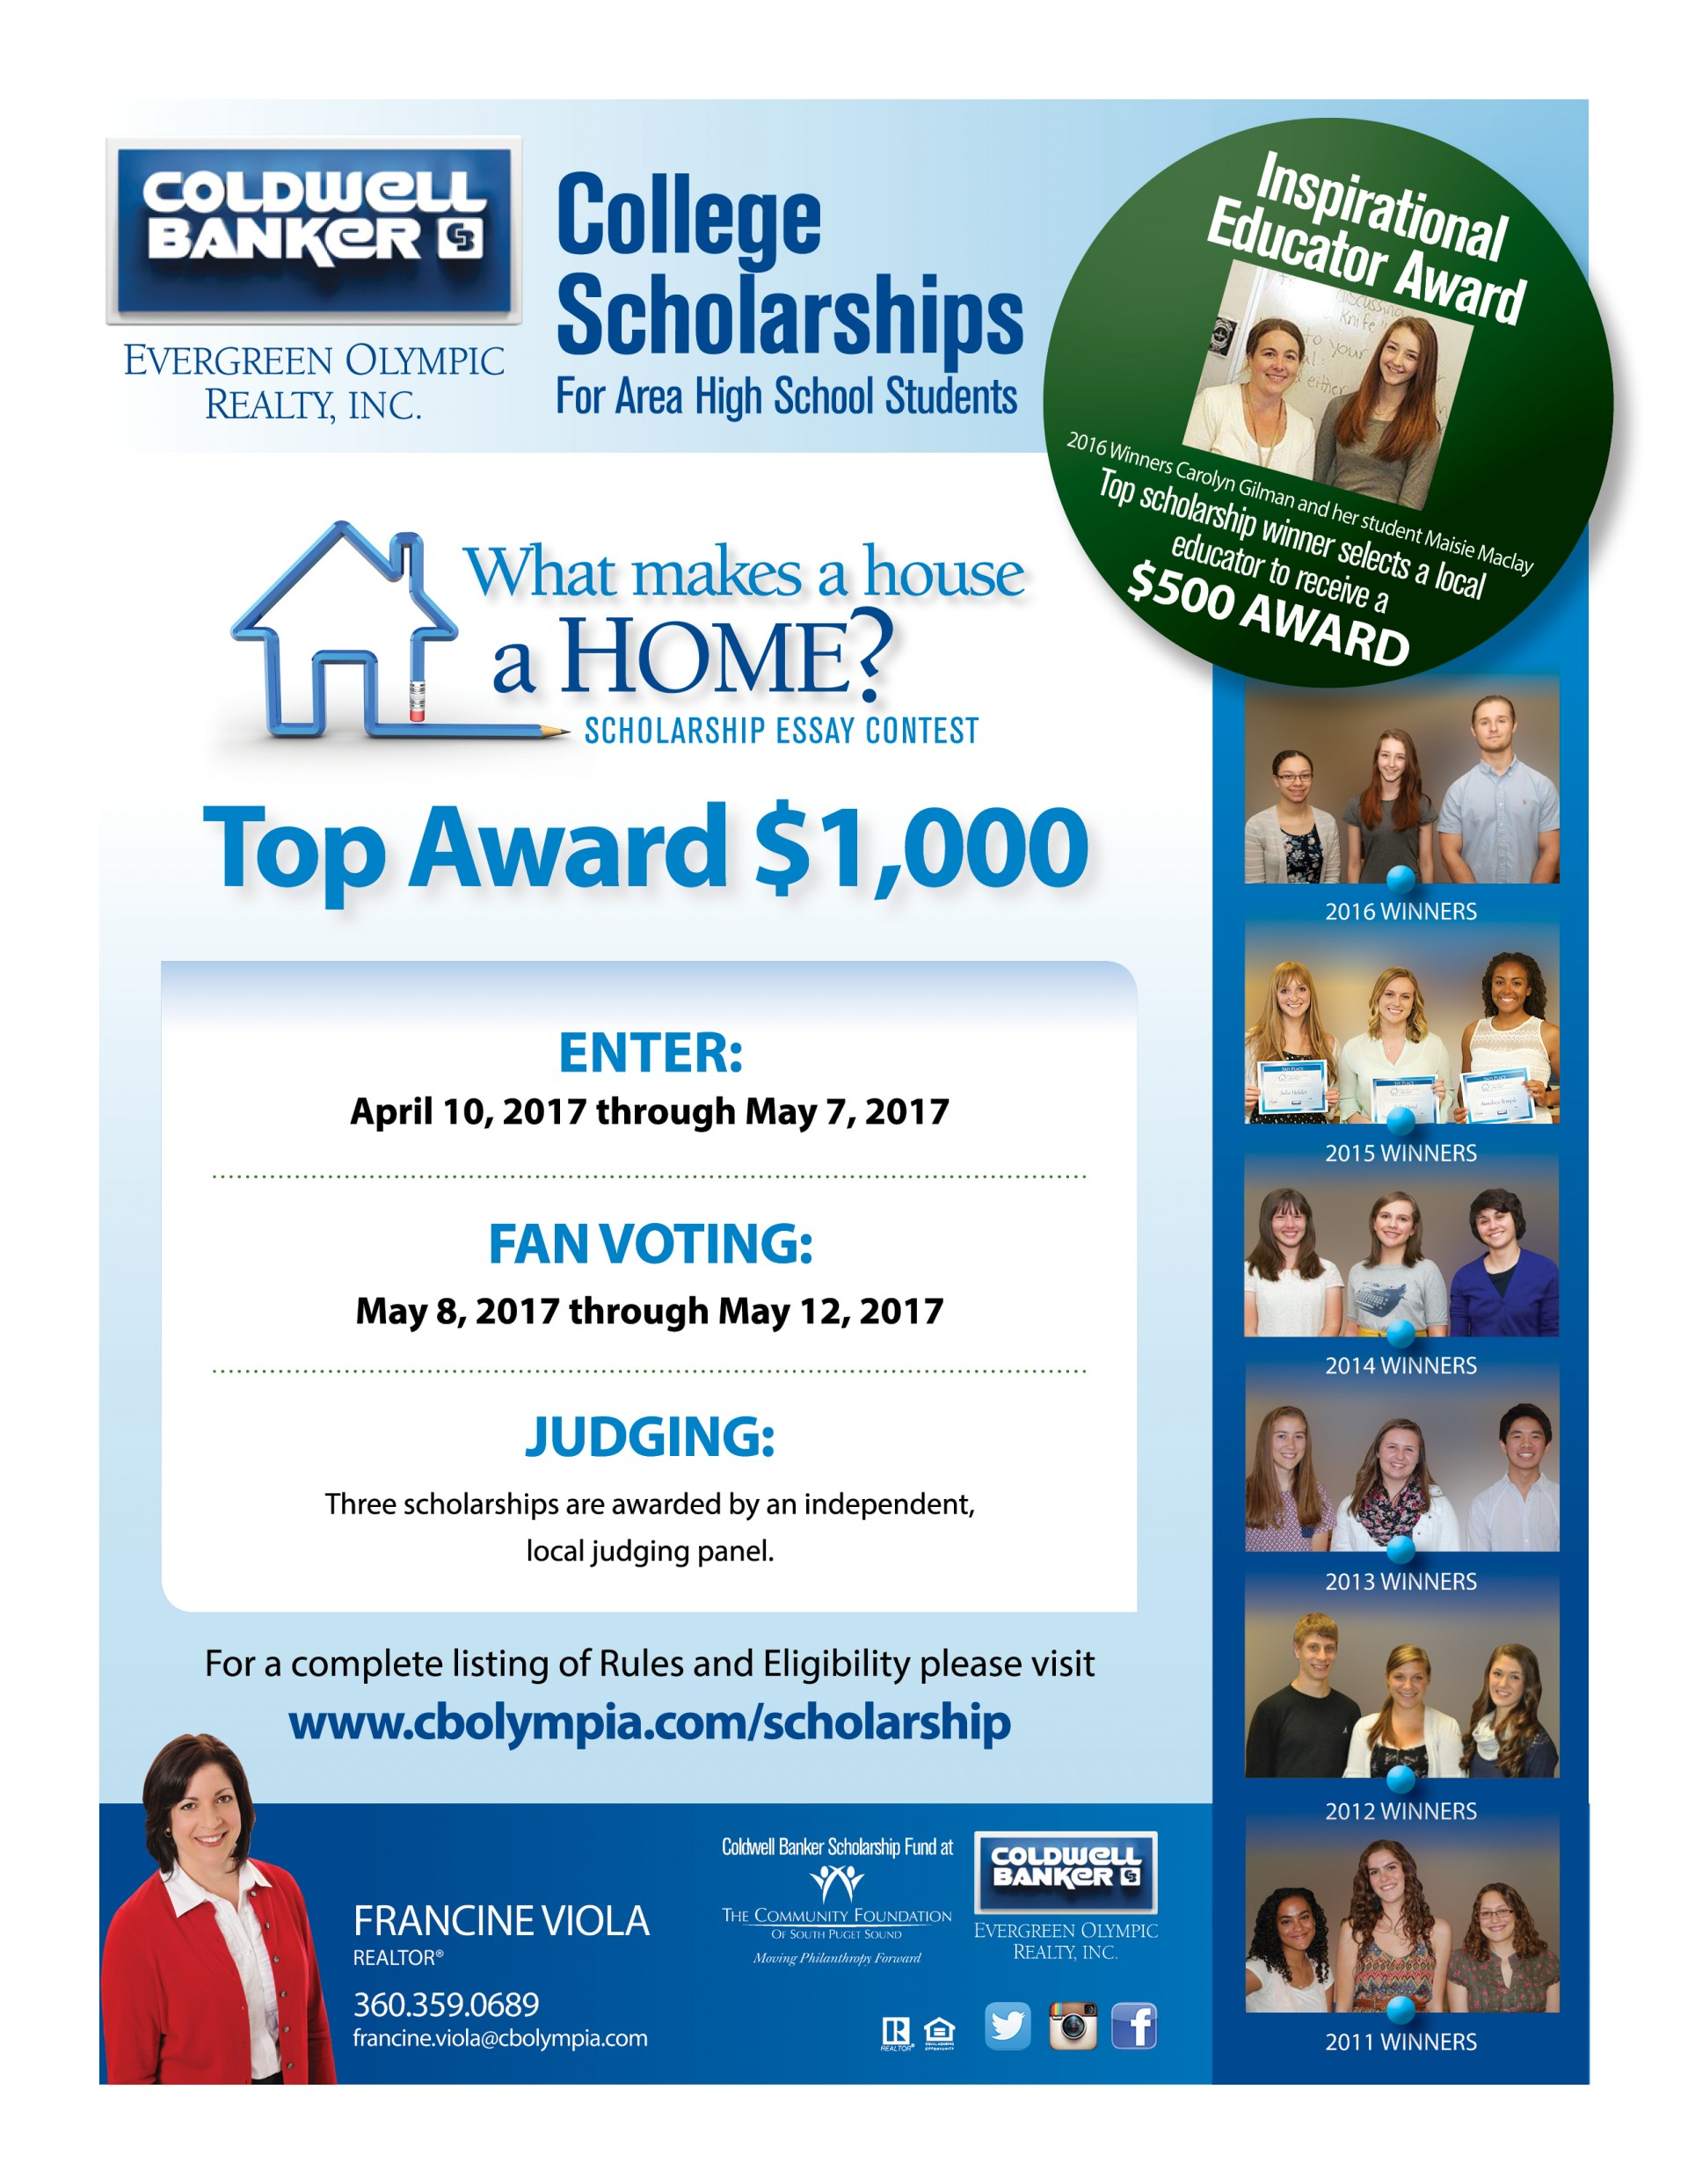 006 Francineviola Scholarship2017 Flyer Scholarship Essay Contest Astounding Contests For High School Students 2019 Middle 1920